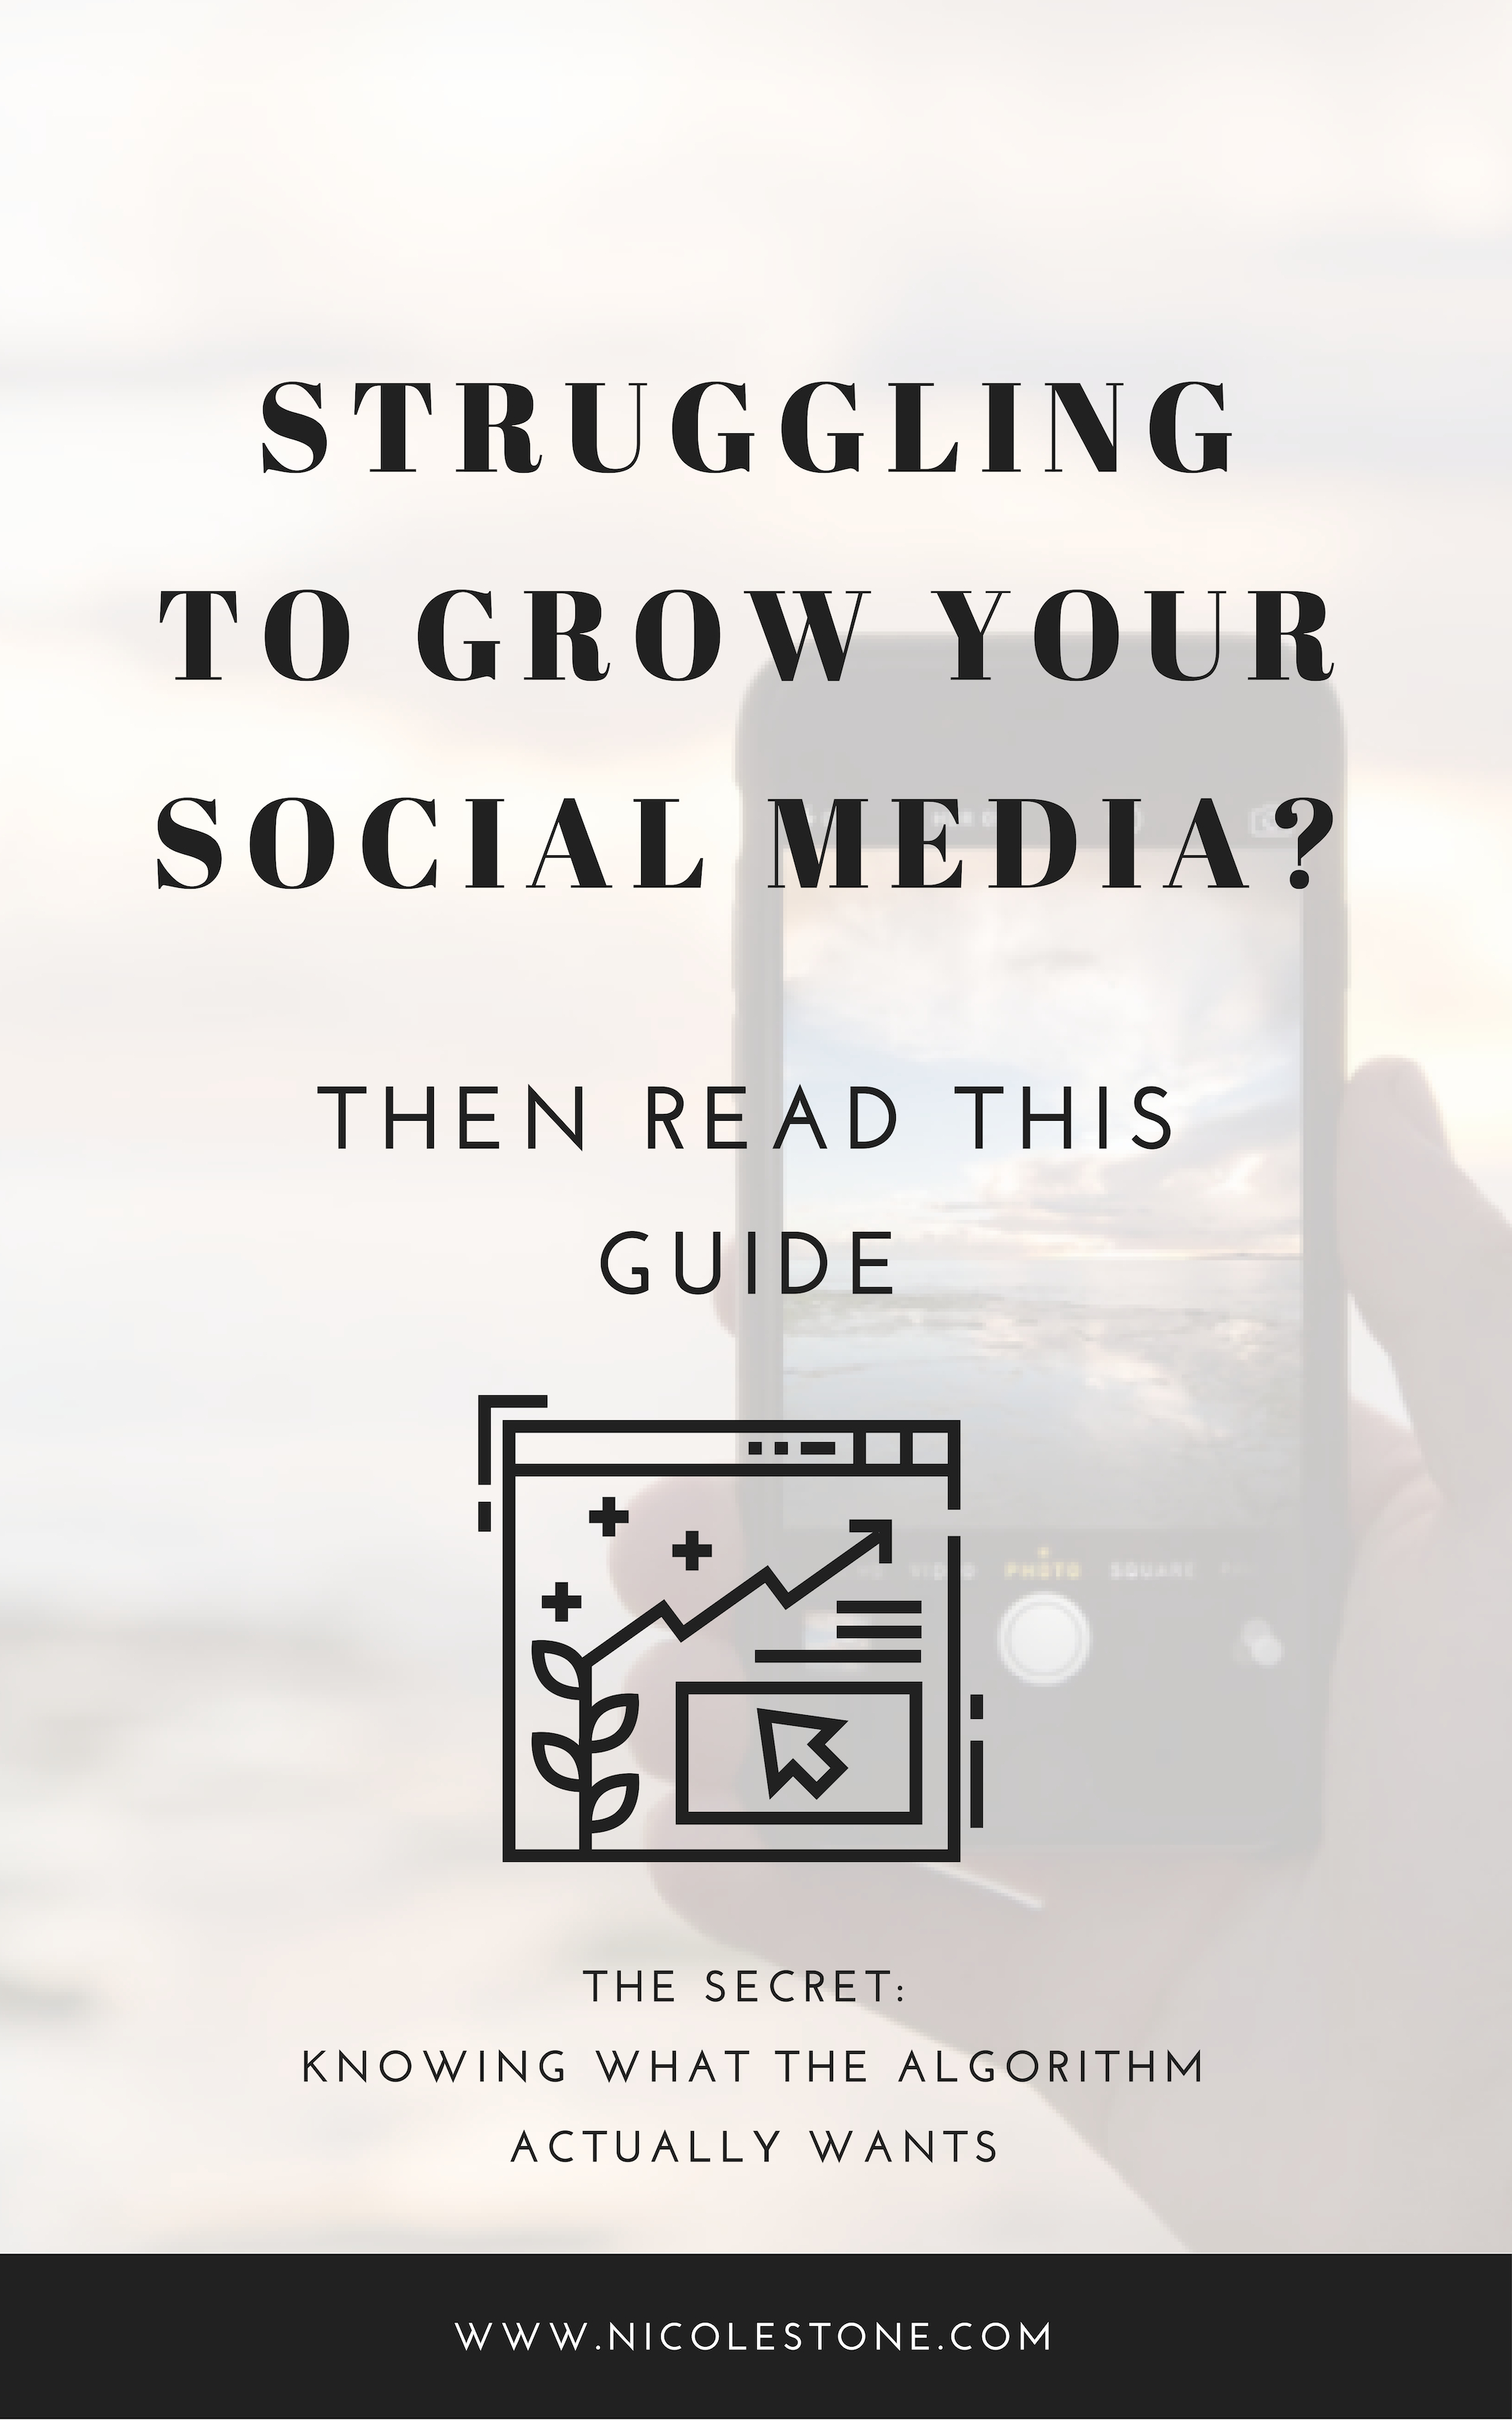 Learn what YOU NEED to focus on to build your social media profiles organically.  Gain a following and build an audience the right way. #socialmedia #marketing #instagram #facebook #blogging #twitter